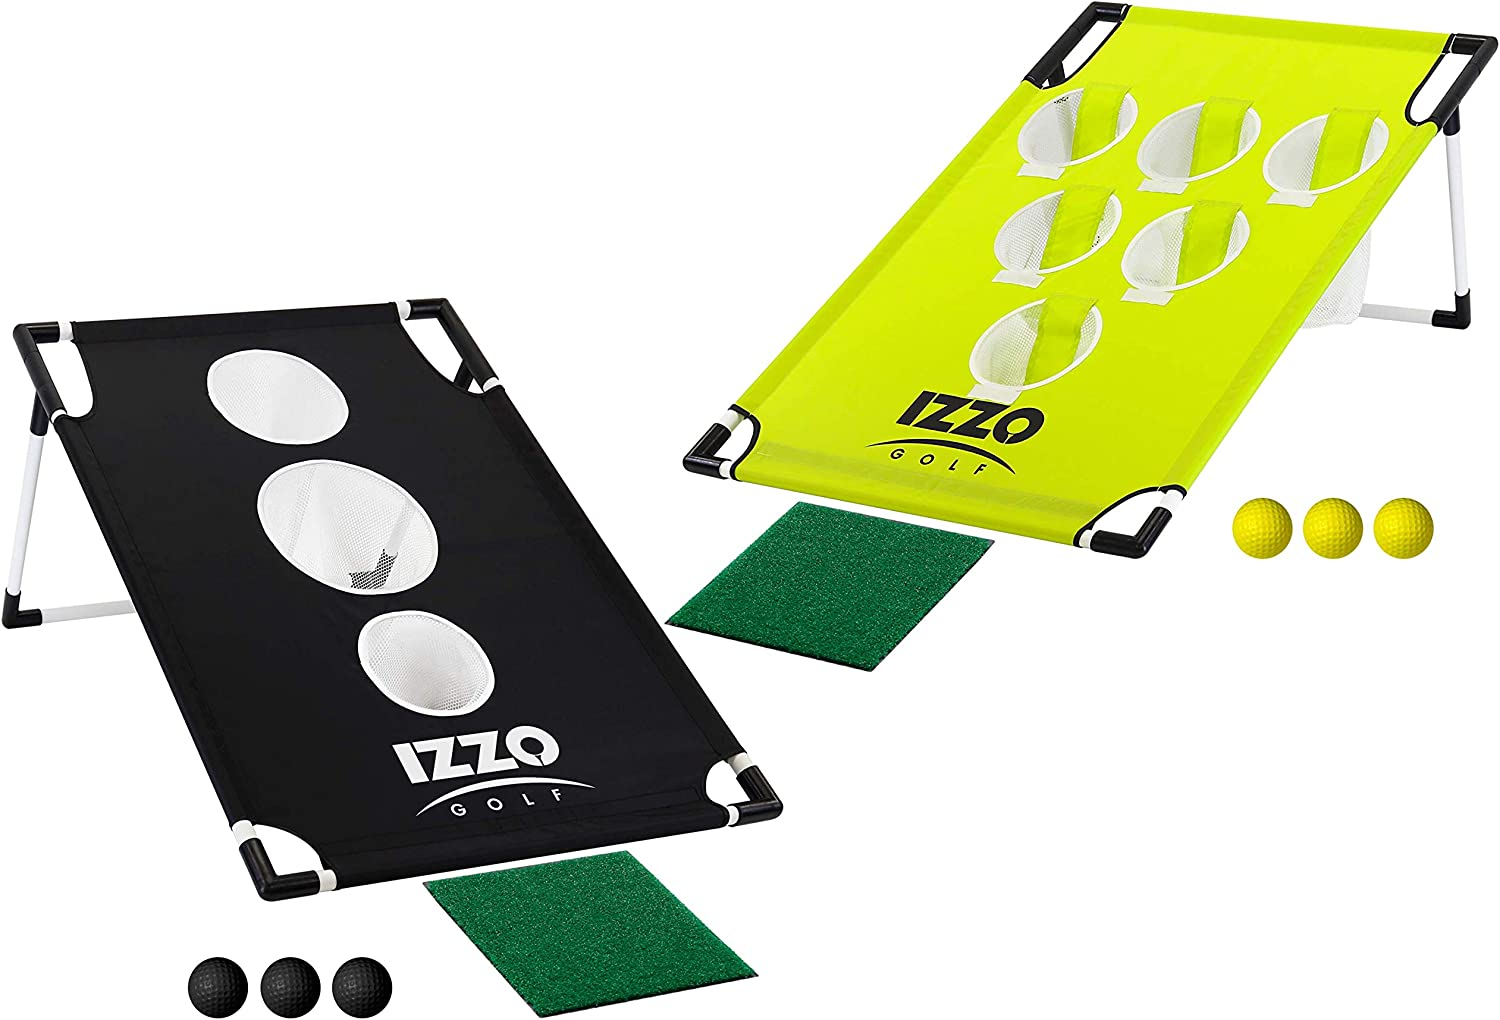 Izzo Pong Hole Golf Chipping Practice & Gaming Set, Black